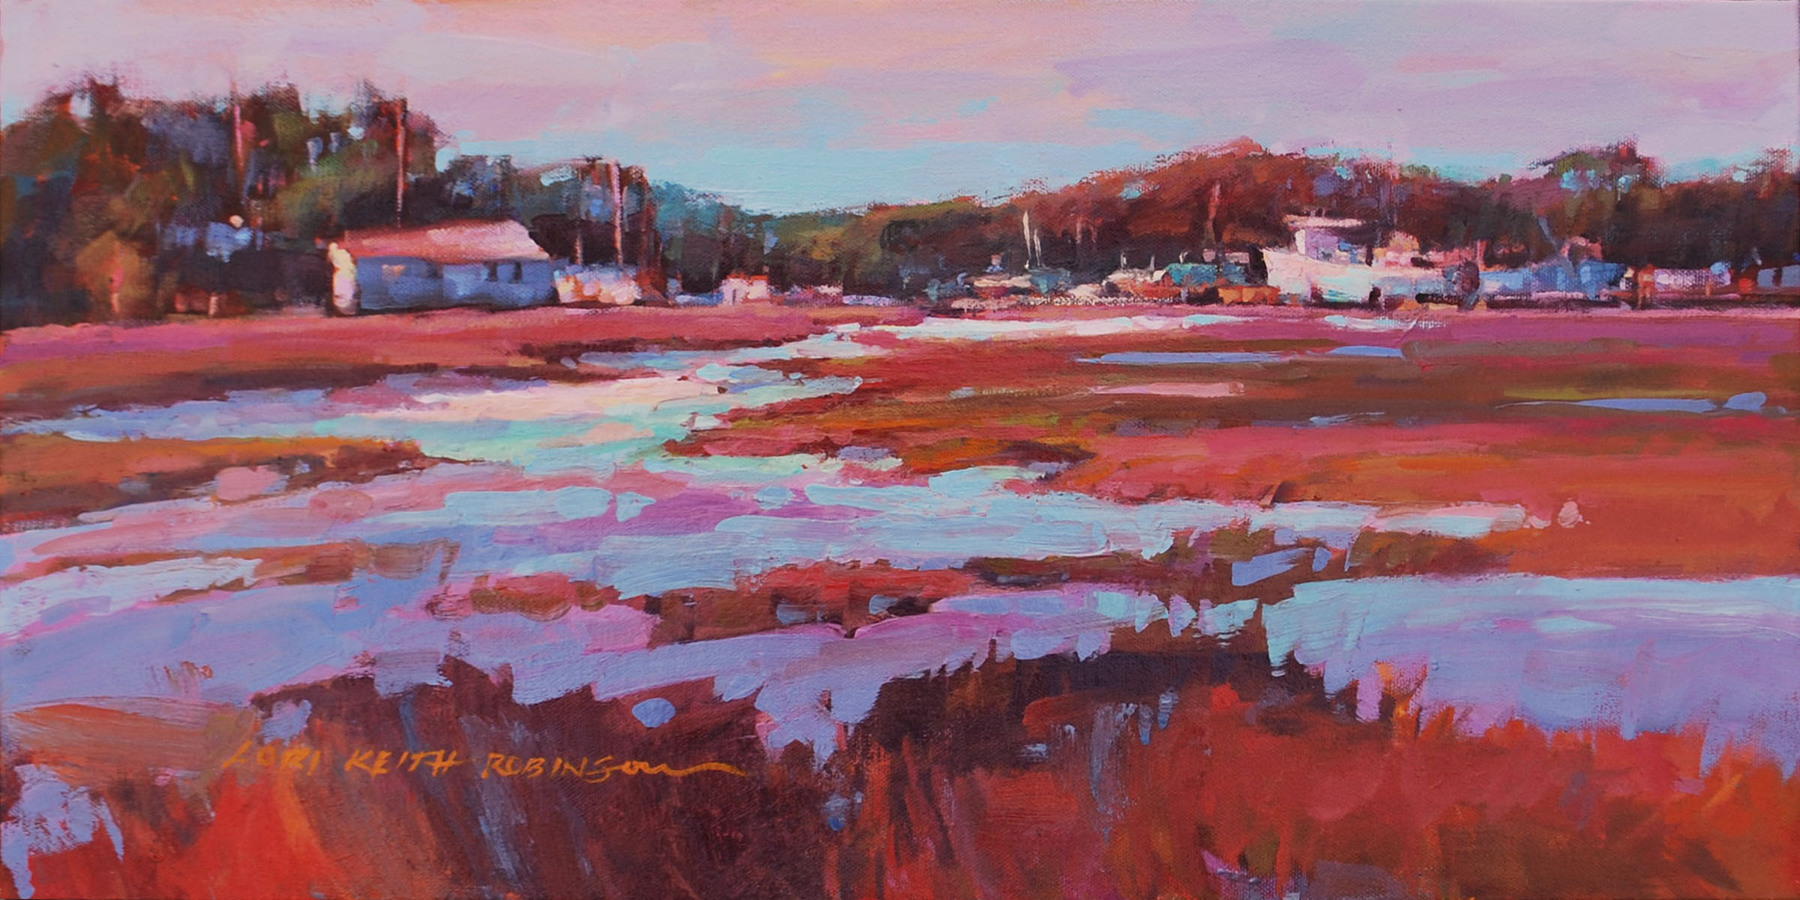 SOLD Evening Lullaby 12x24 o/c  - Lori Keith Robinson